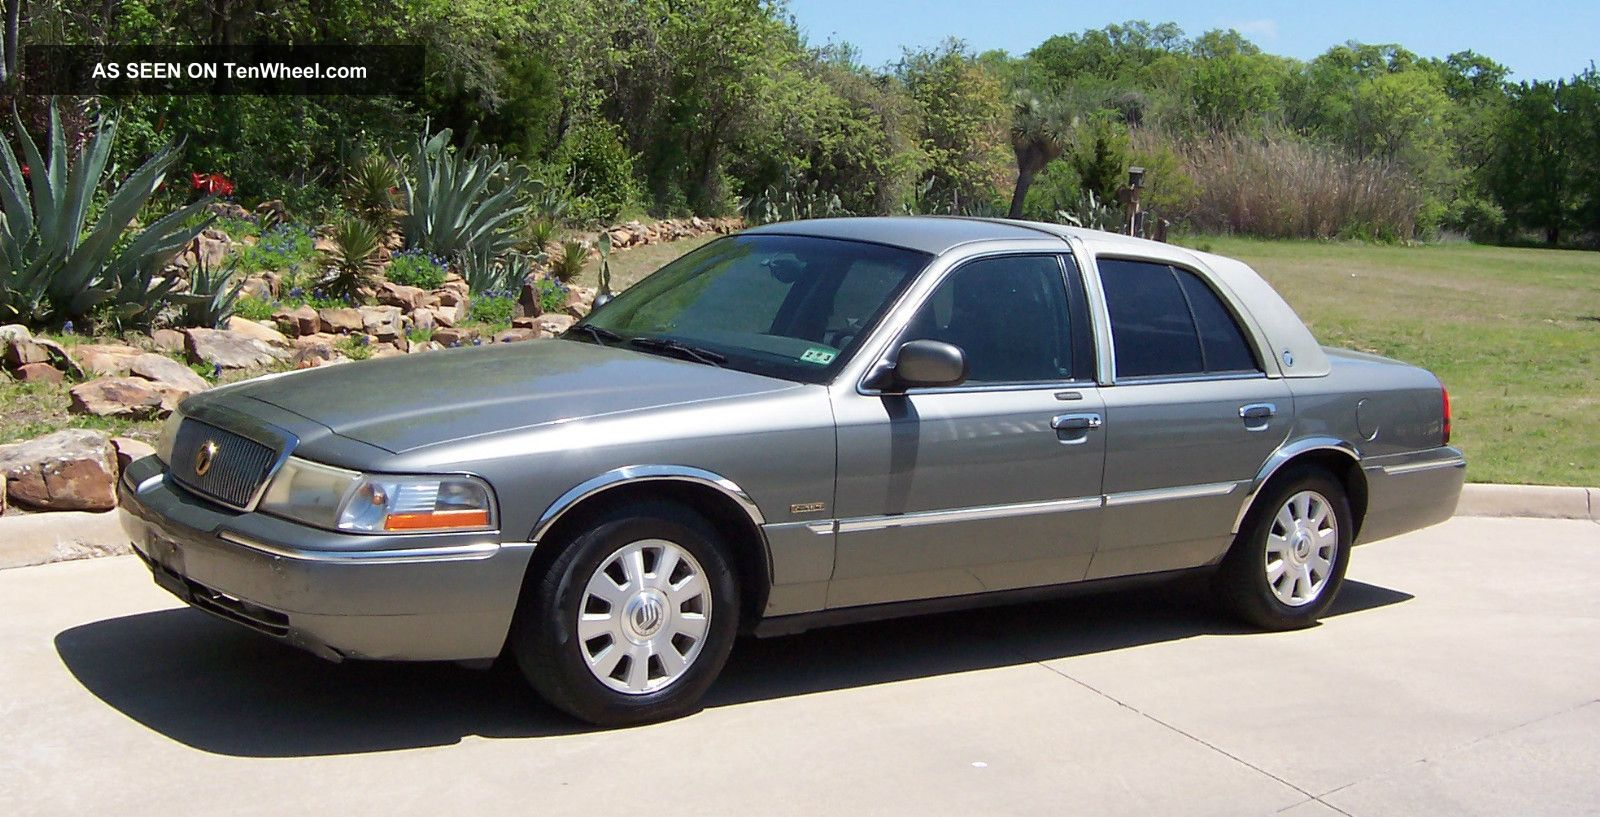 2003 Mercury Grand Marquis Ls - Runs And Drives Perfect - Great Luxury Car Grand Marquis photo